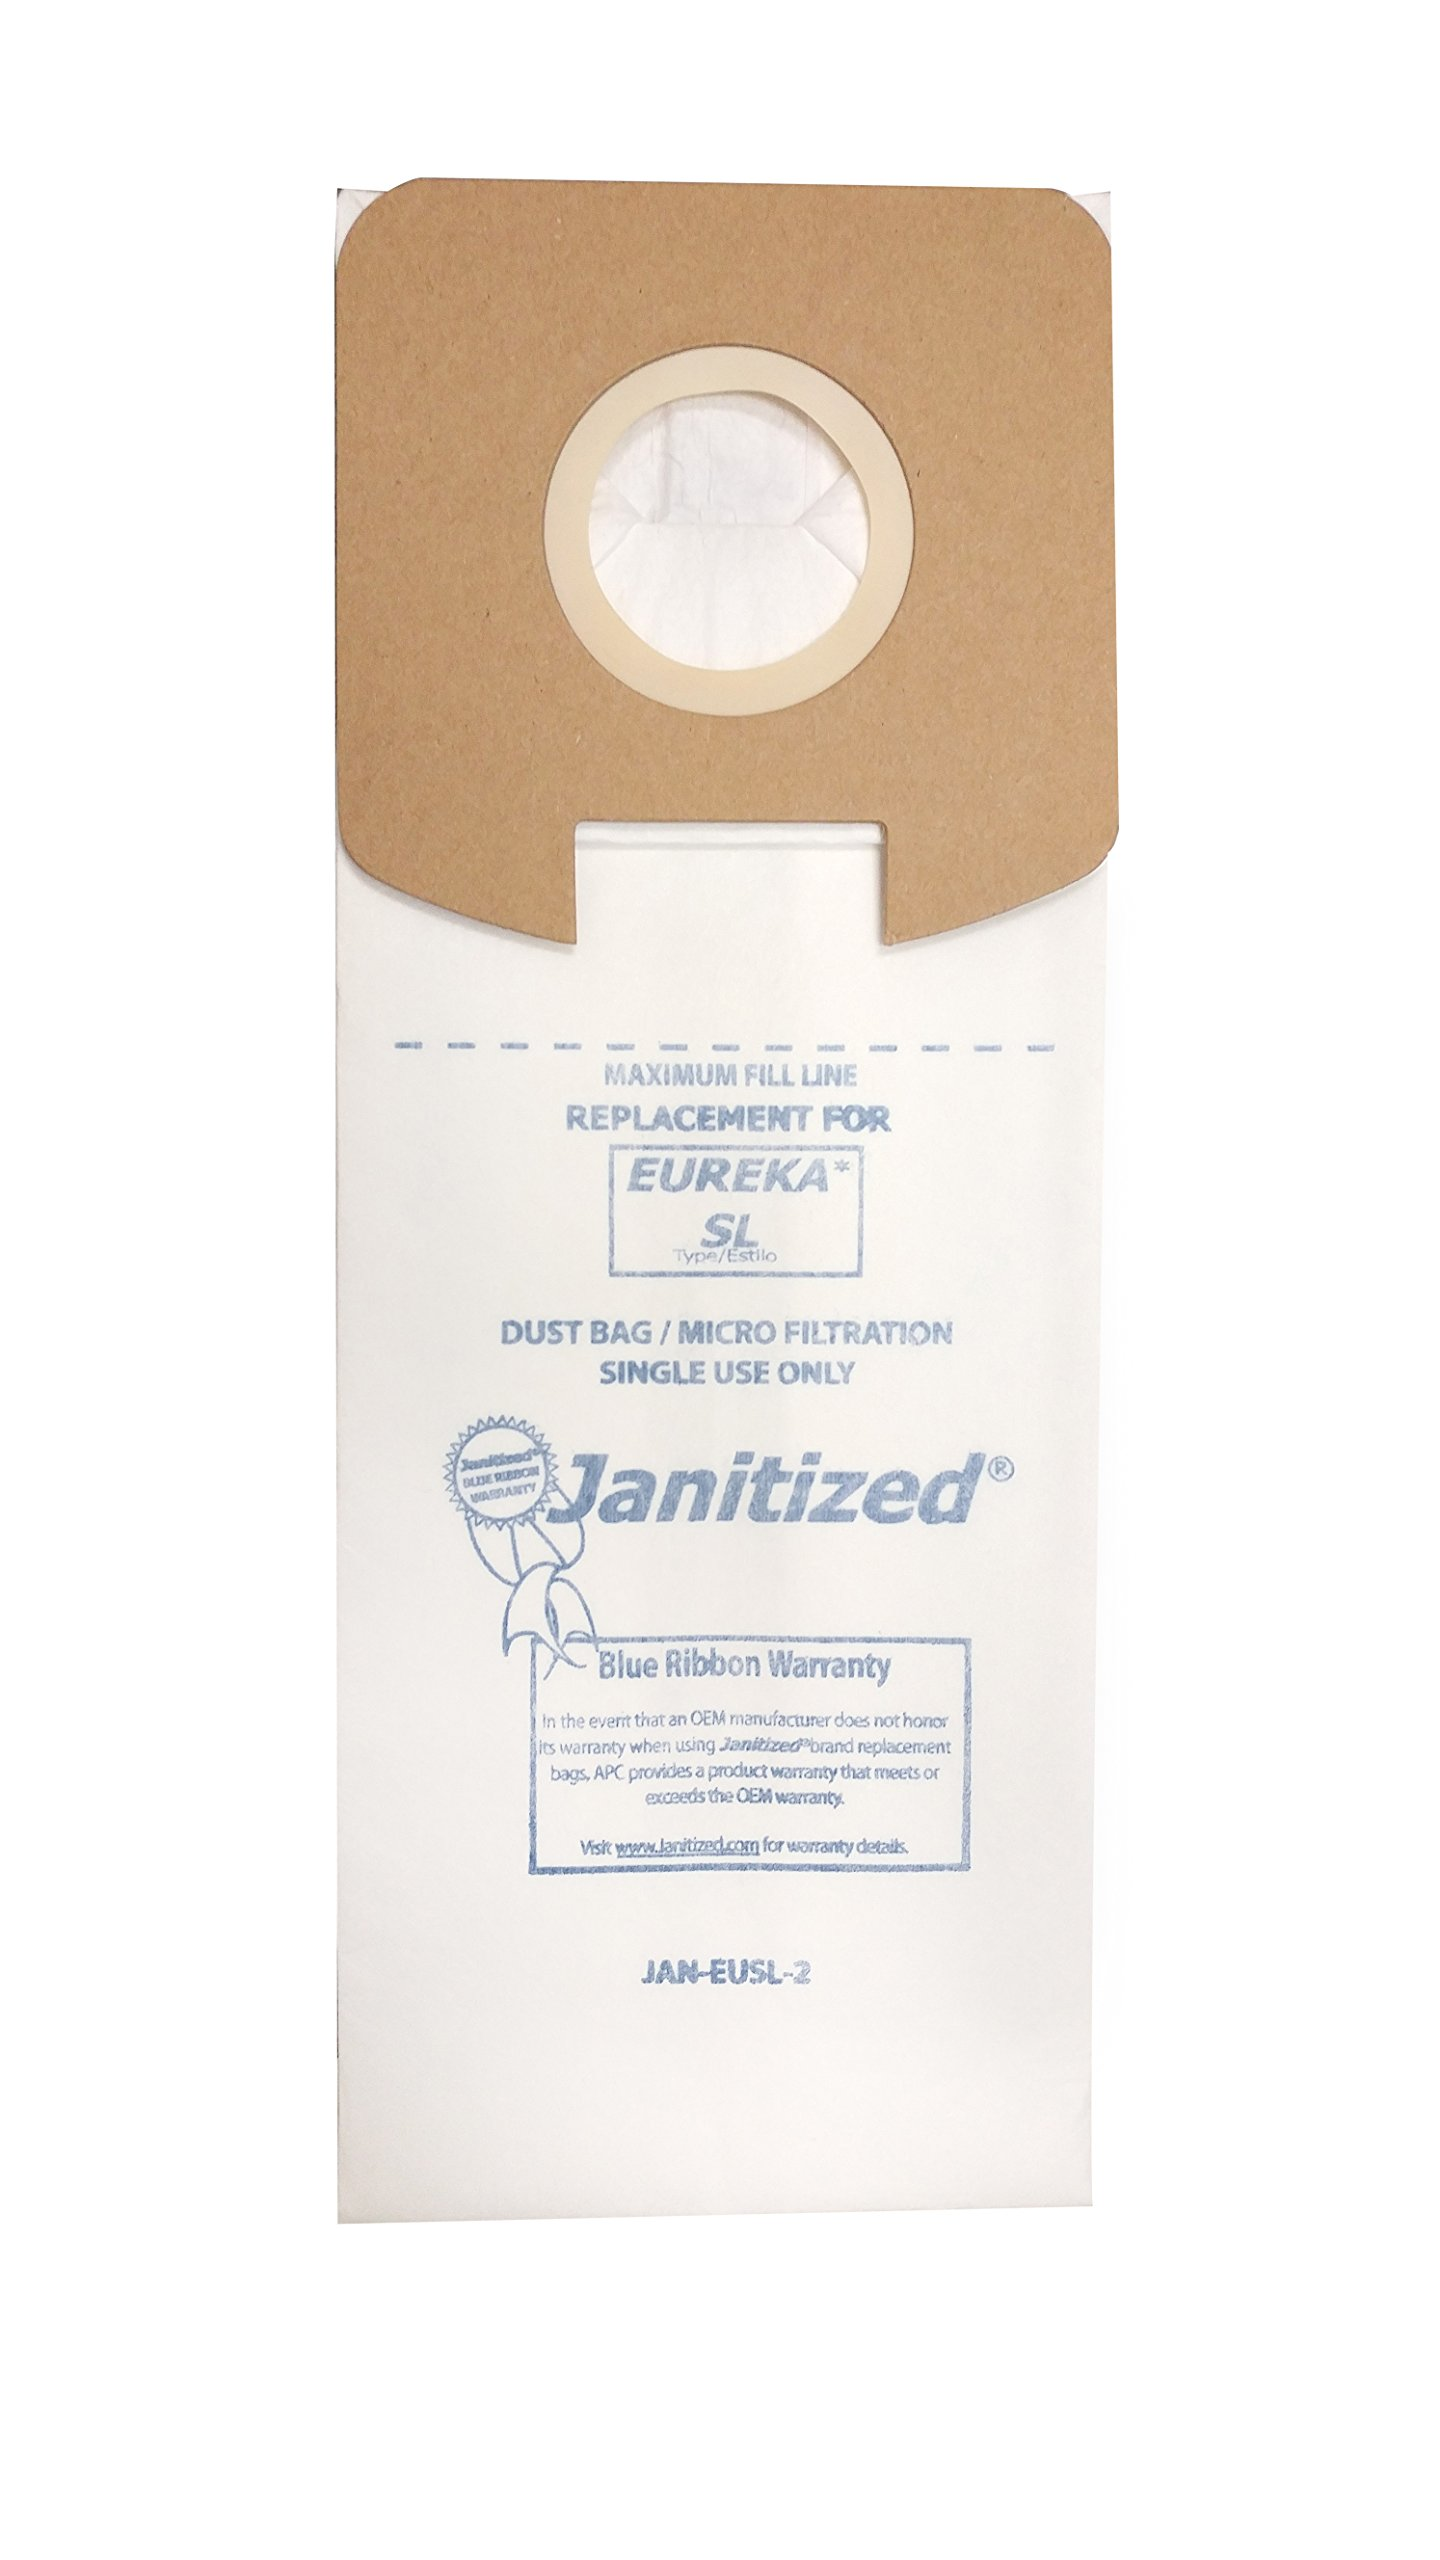 Janitized JAN-EUSL-2(3) Premium Replacement Commercial Vacuum Paper Bag, Eureka SL-Fits Eureka S782, SC785, Sanitaire Lightweight Vacuum Cleaners, OEM#61122, 61125 and 61125A (Pack of 3)